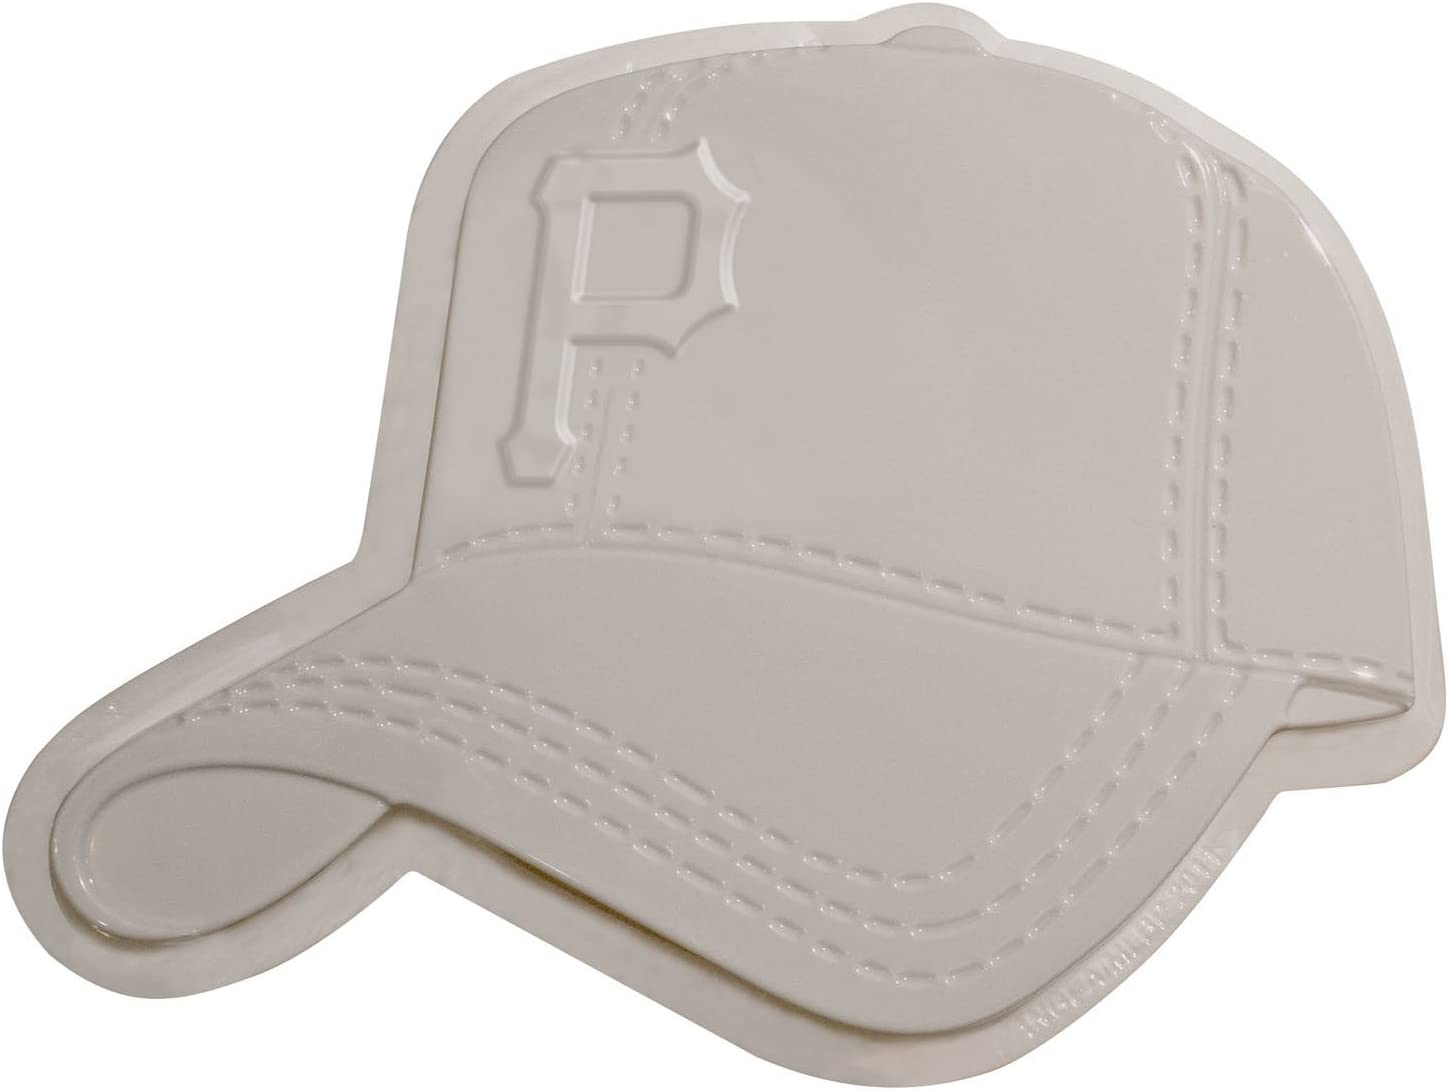 MLB Save money Pittsburgh Limited price sale Pirates Fan Cakes CPET Heat Plastic Cak Resistant